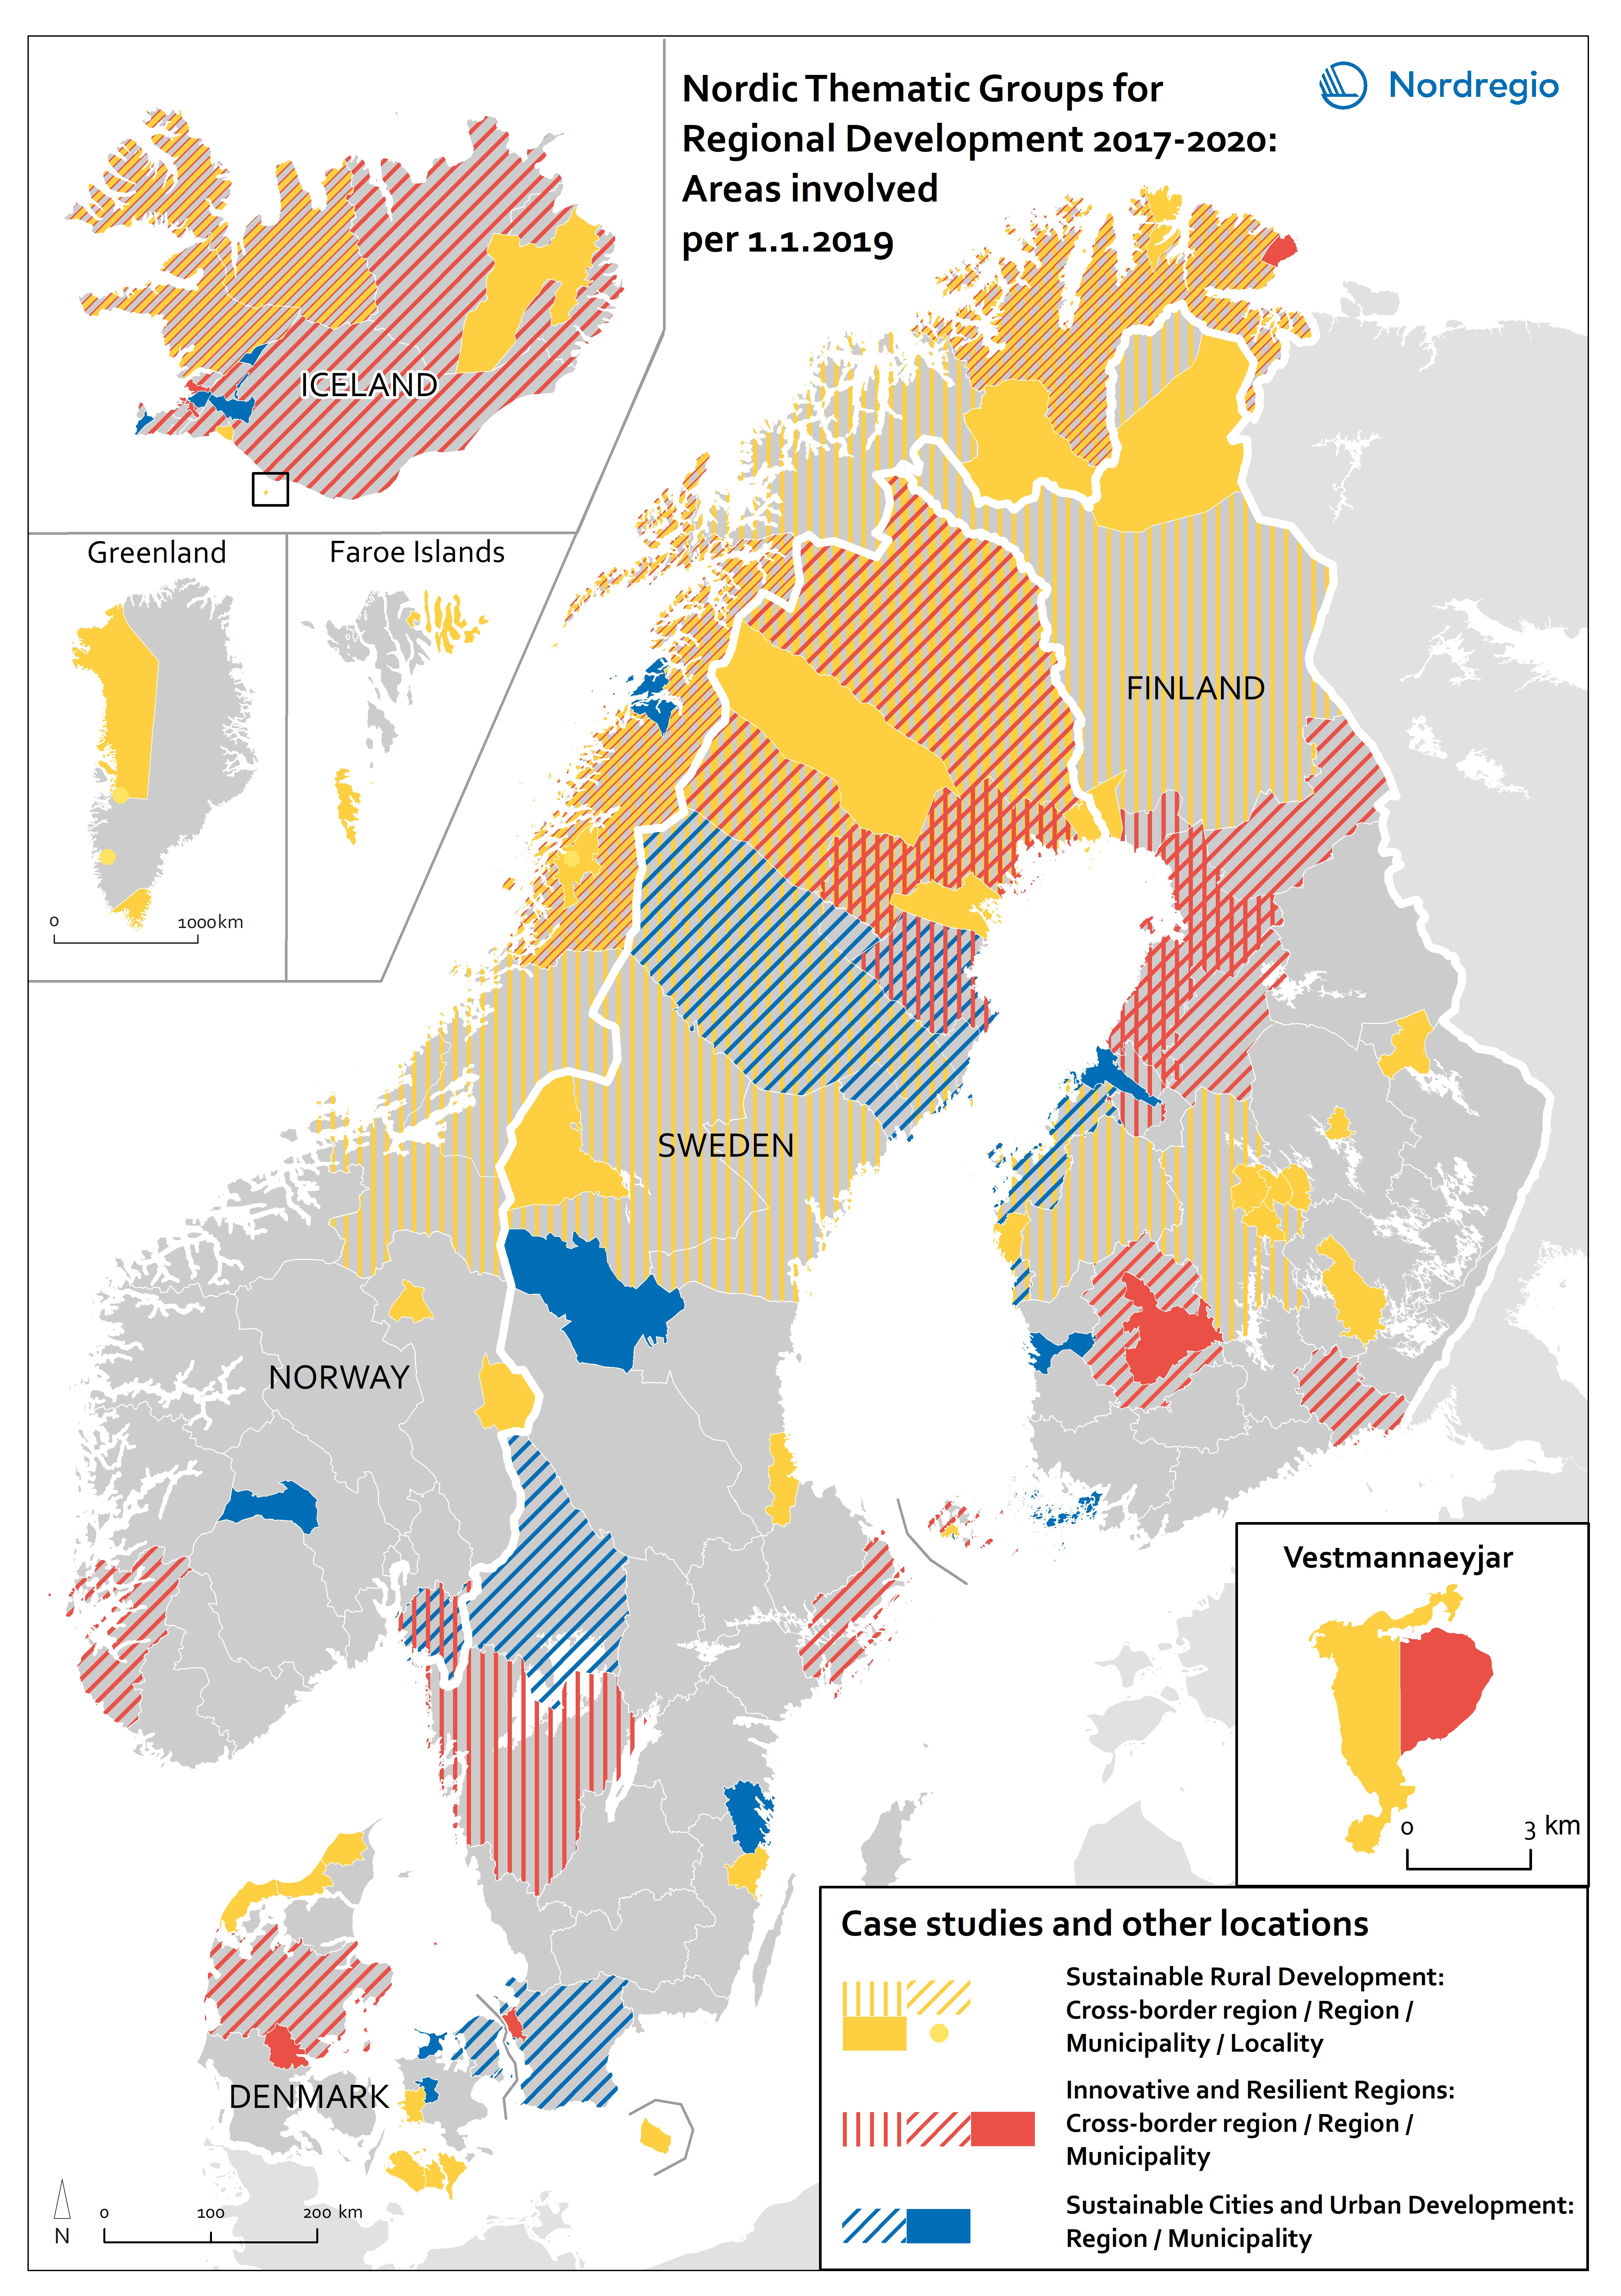 Map of the Nordic region